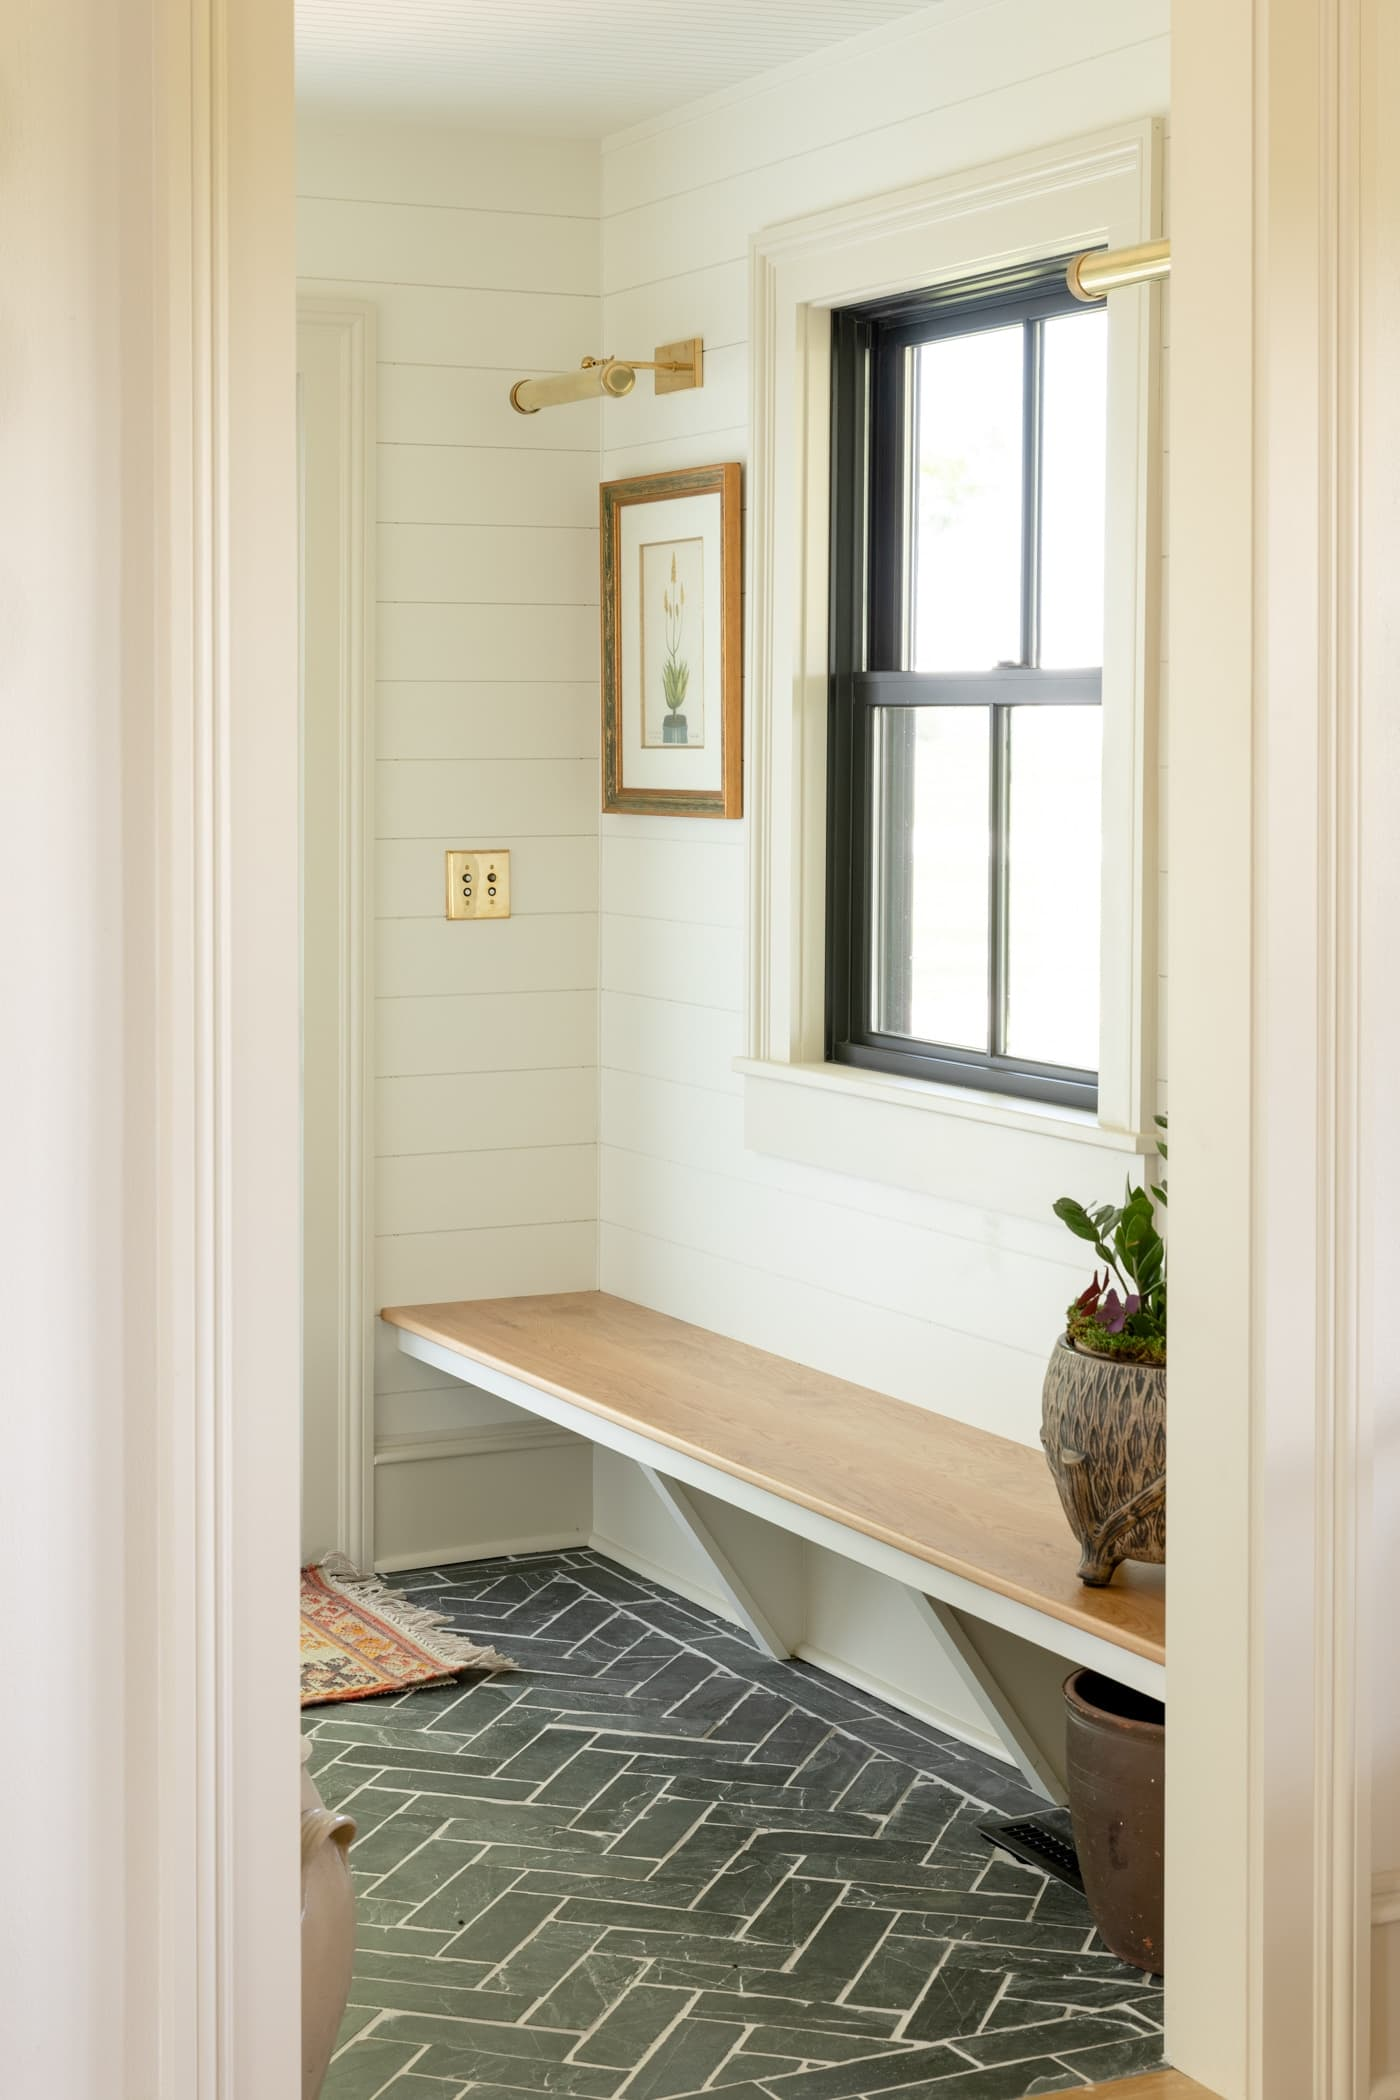 Dark gray slate floor and white oak bench make up a small entry space with black window and painting with a brass sconce above